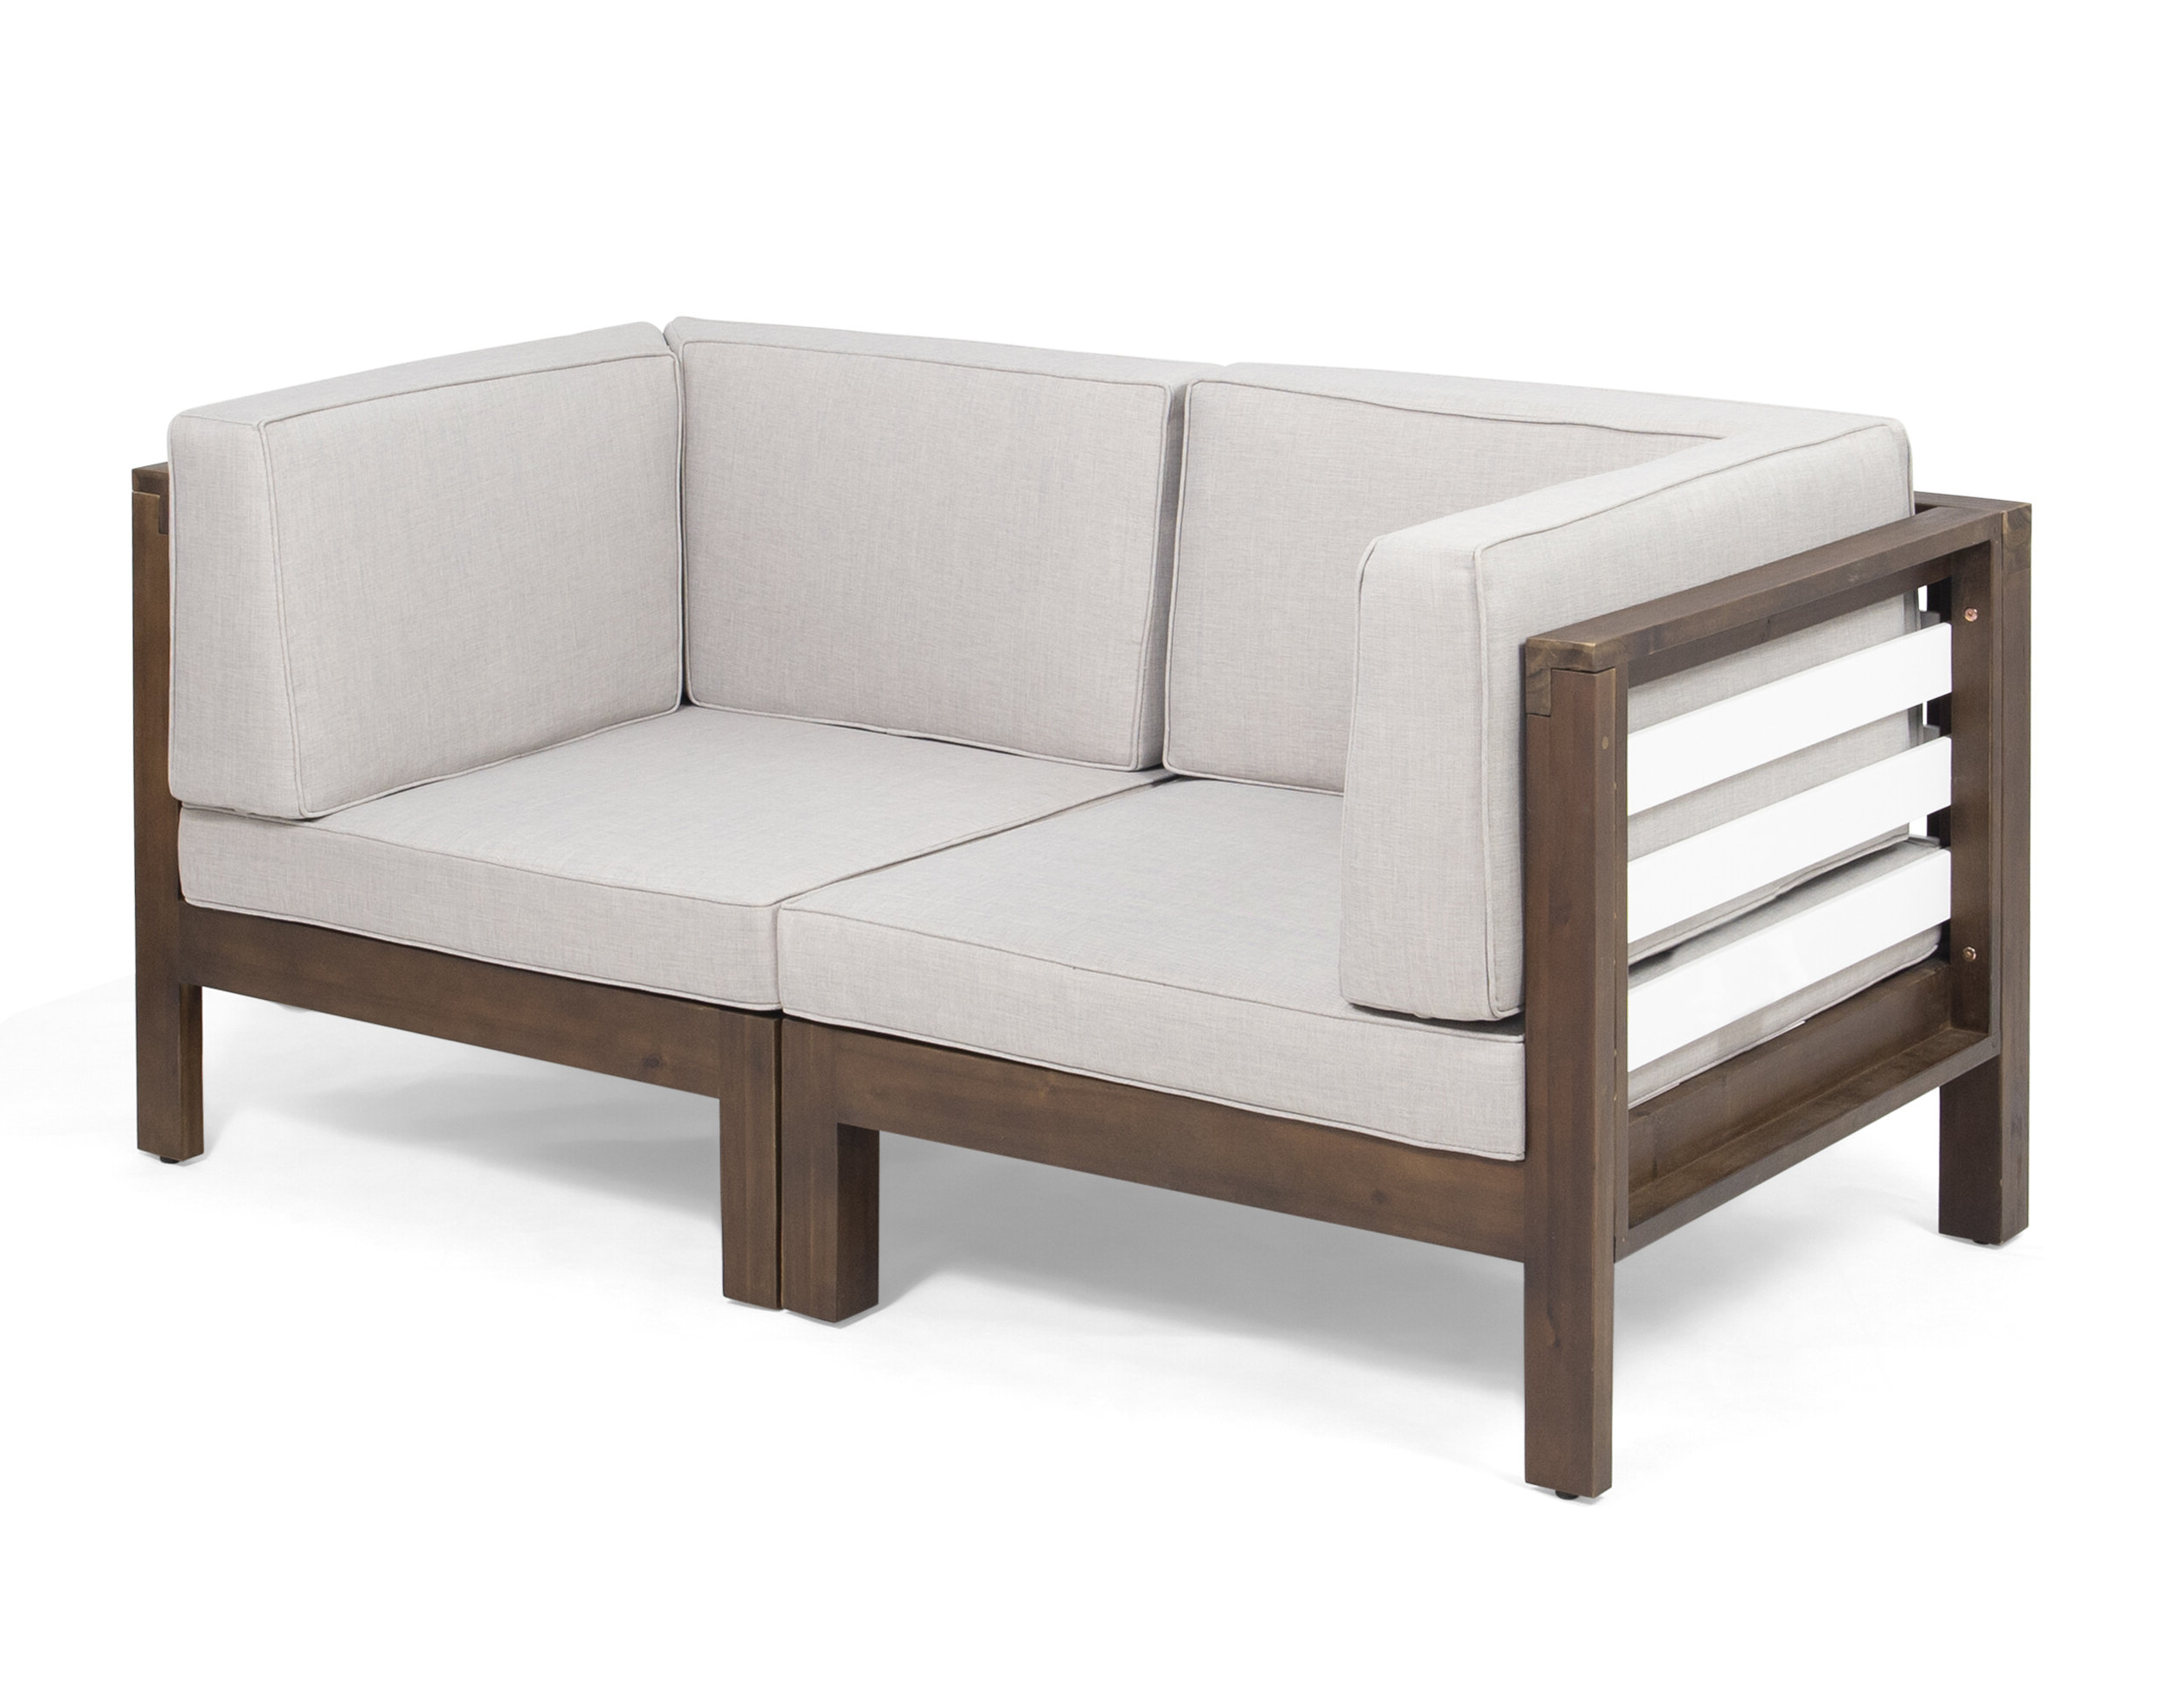 Most Recent Parks Outdoor Modular Loveseat With Cushions With Regard To Lyall Loveseats With Cushion (View 7 of 20)